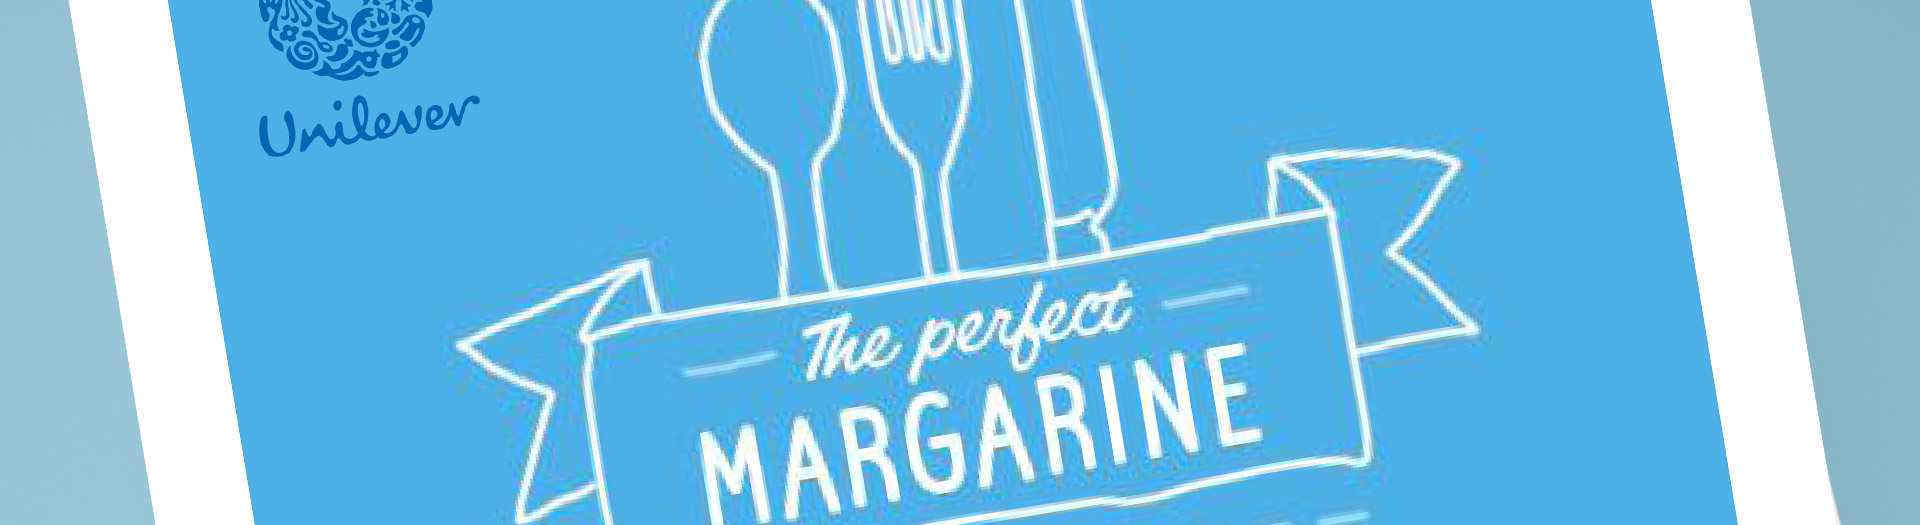 The-perfect-margarine